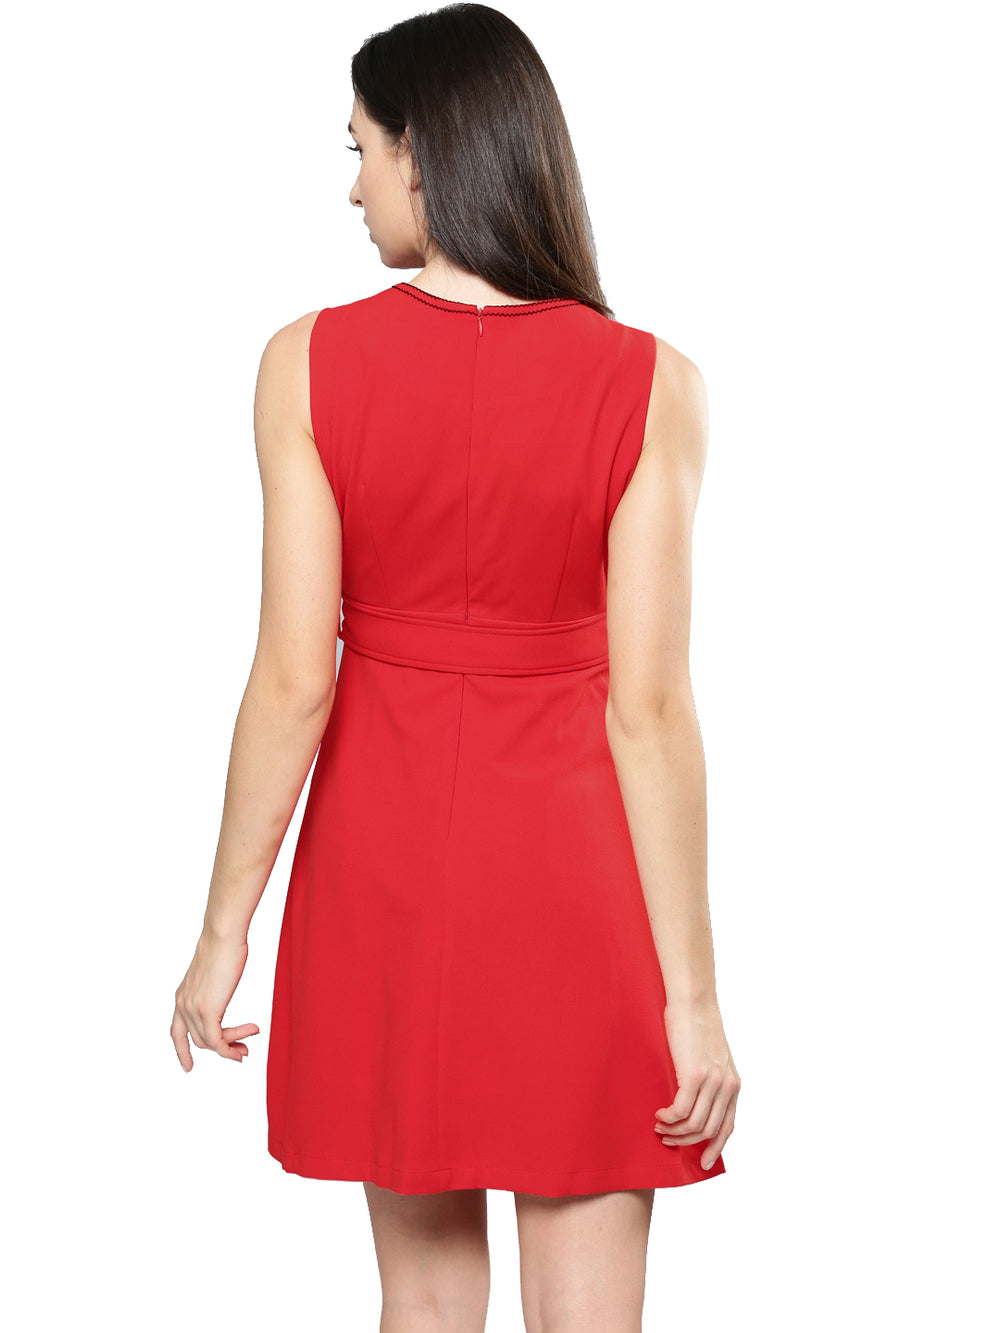 Red Solid A-Line Dress Sleeveless